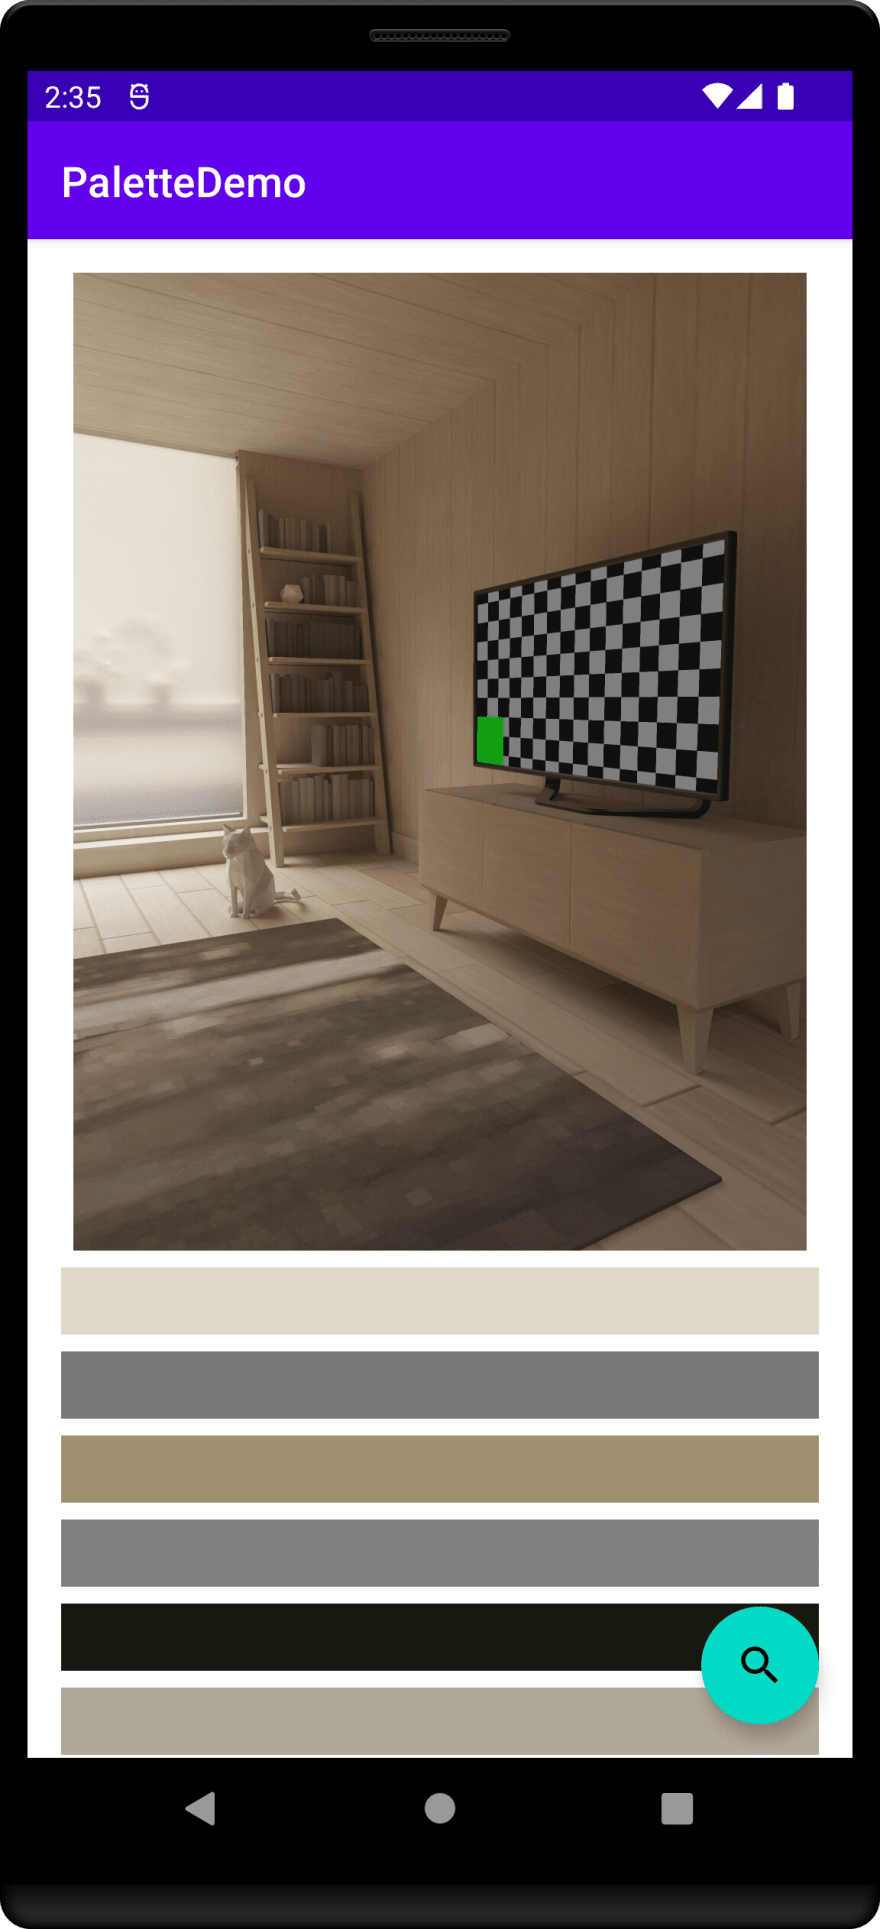 PaletteDemo showing the selected image and significant colors